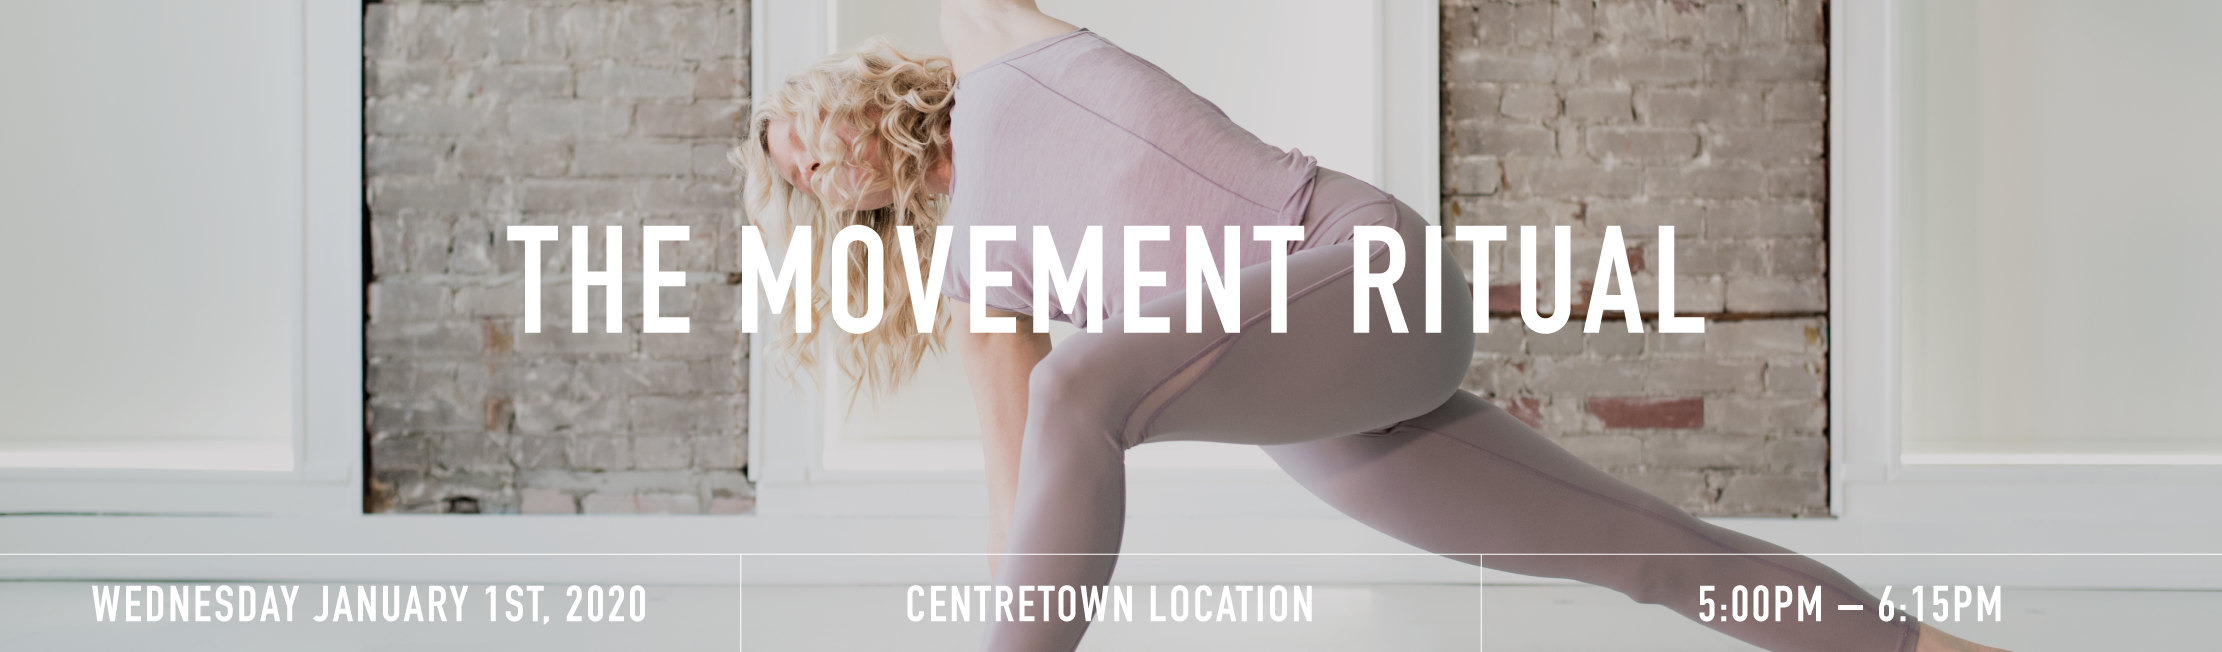 Movement ritual banner  1